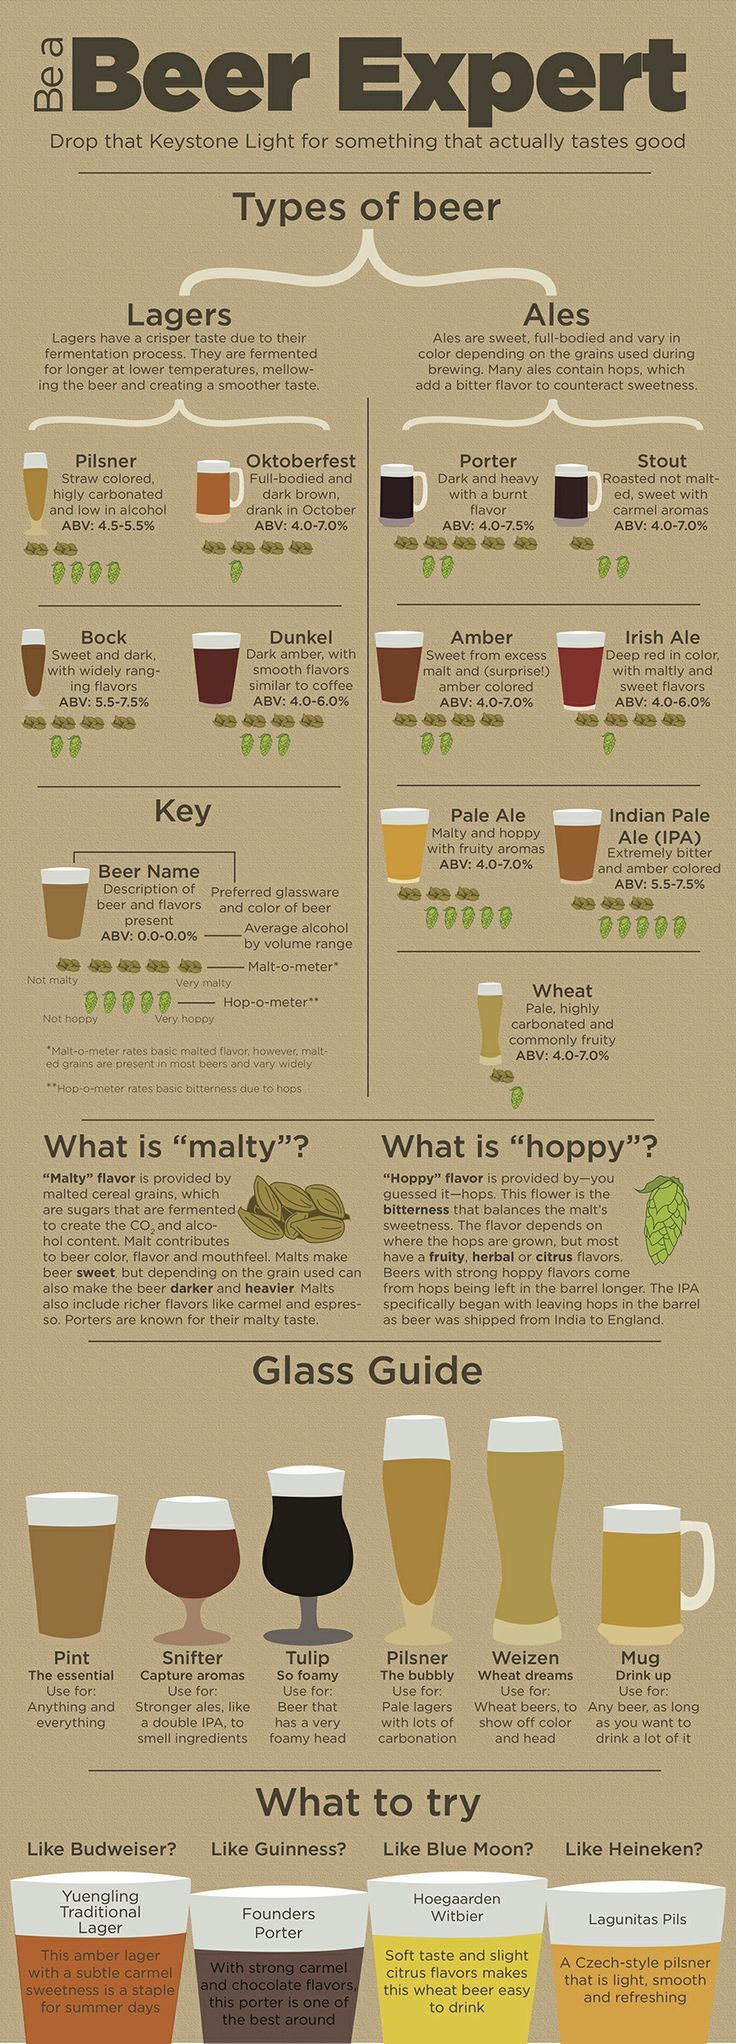 What Does the Beer You Drink Say About Your Personality?